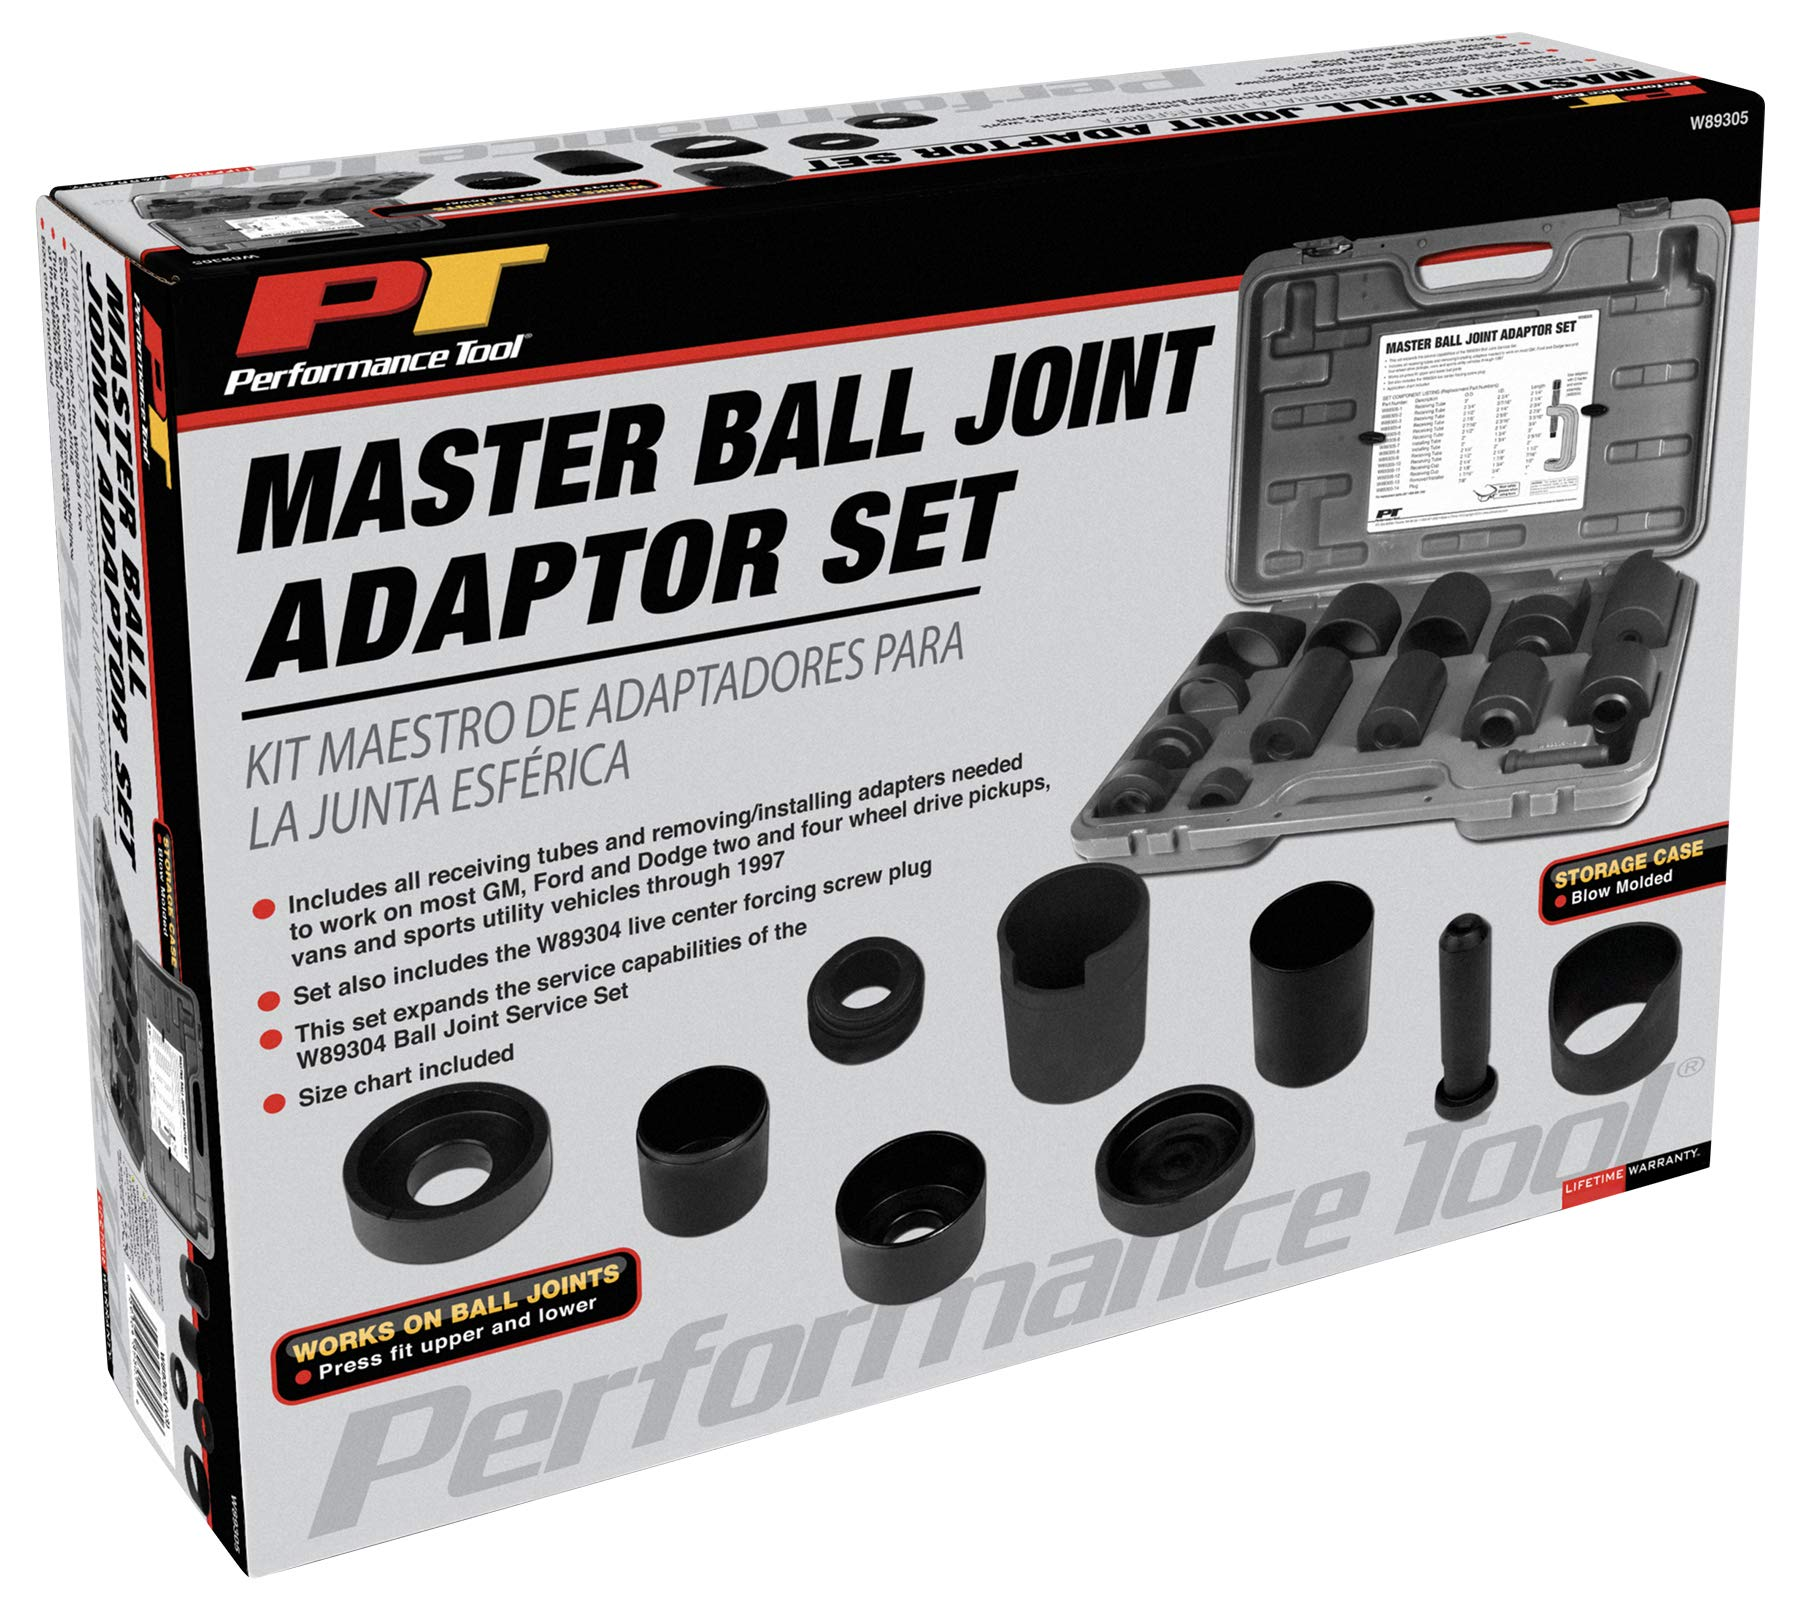 Performance Tool W89305 Master Ball Joint Adapter Set by Performance Tool (Image #4)